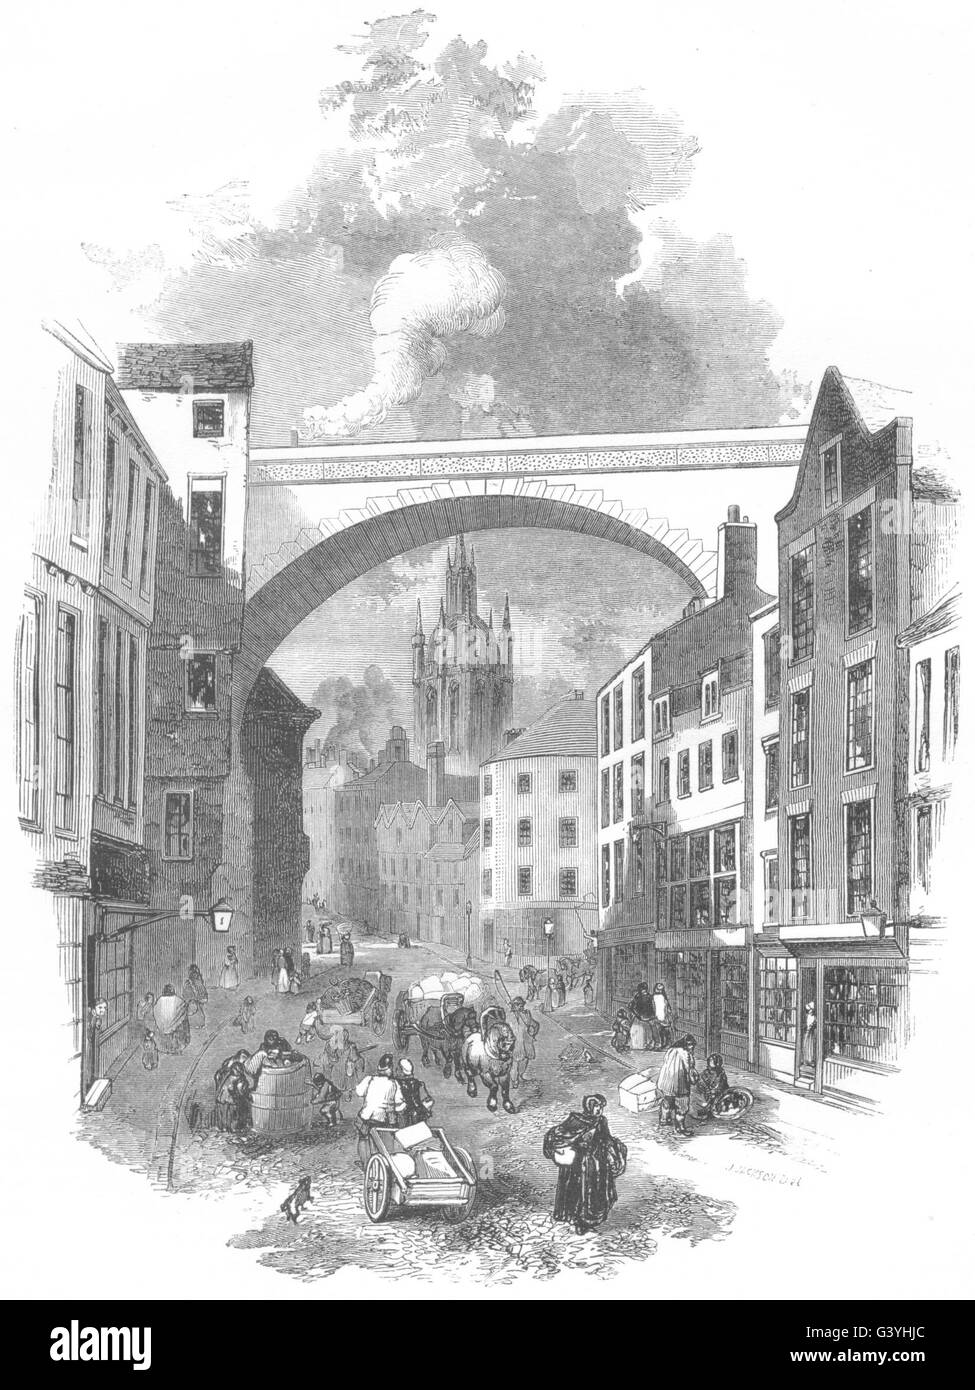 NORTHUMBERLAND: Newcastle: Viaduct, at the end of Dean Street, old print 1850 - Stock Image